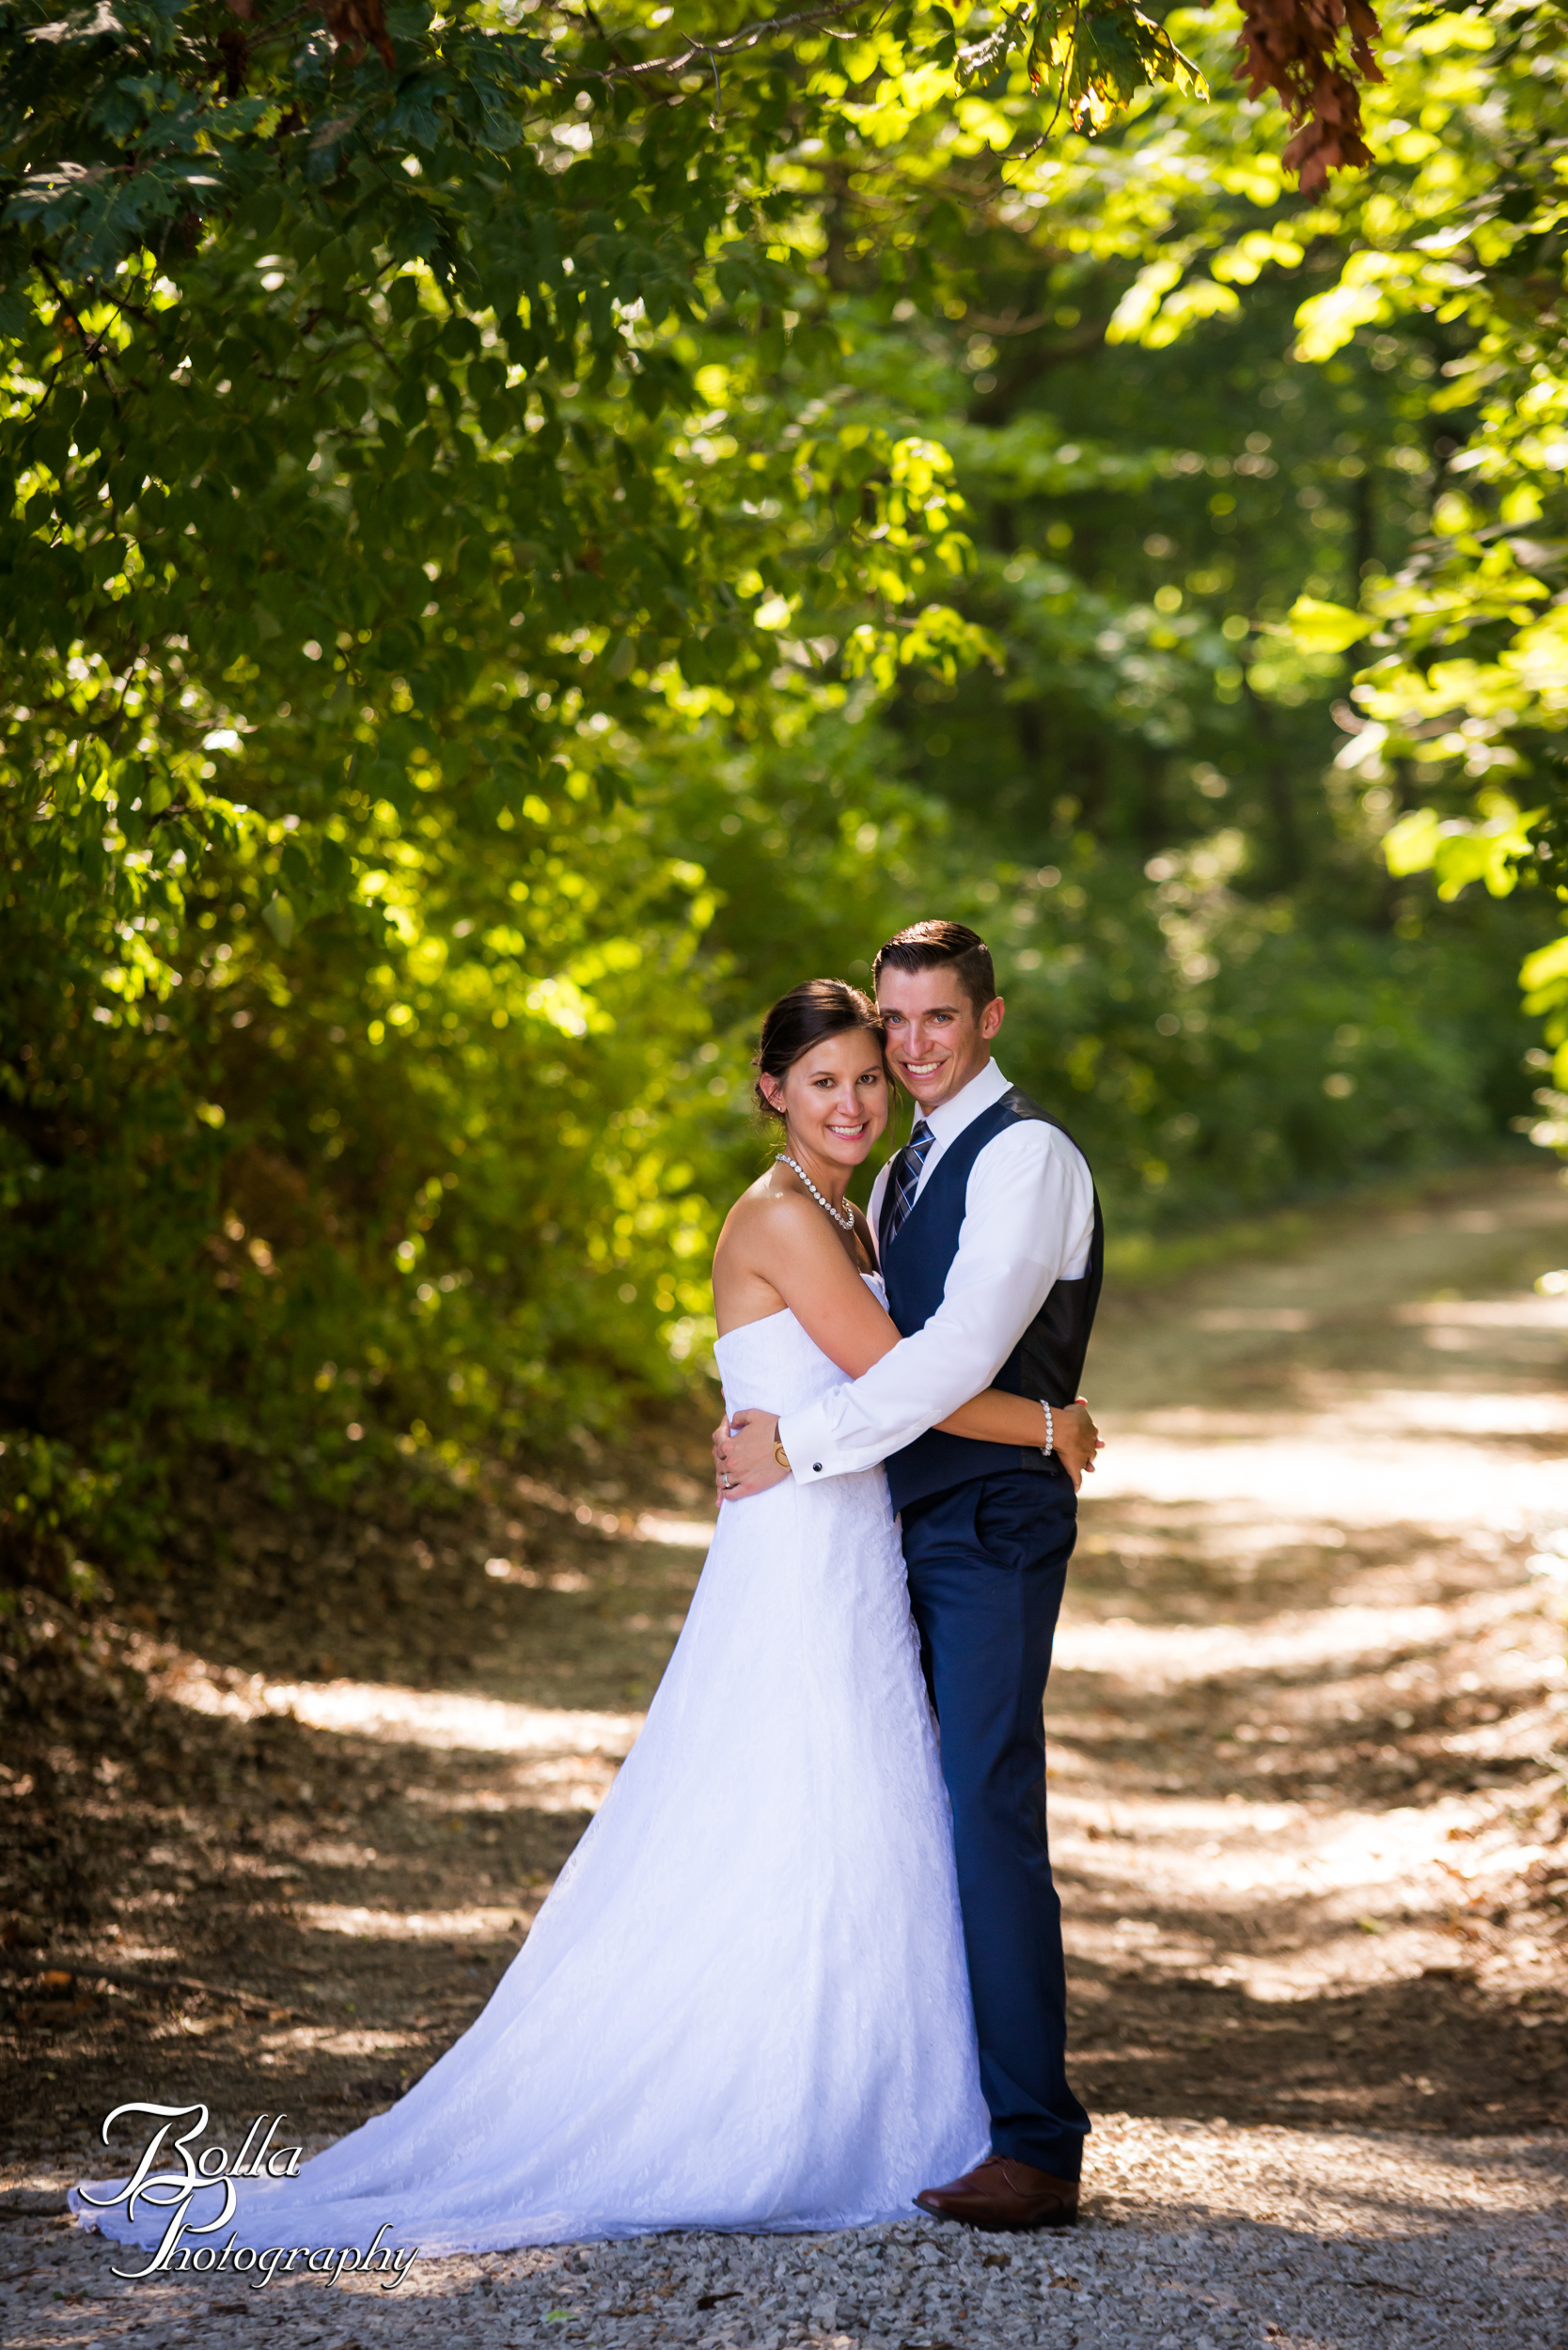 Bolla_photography_edwardsville_wedding_photographer_st_louis_weddings_Jessica_Barbachem_Dillon_Kaesberg_Waterloo_Red_Bud-0005.jpg